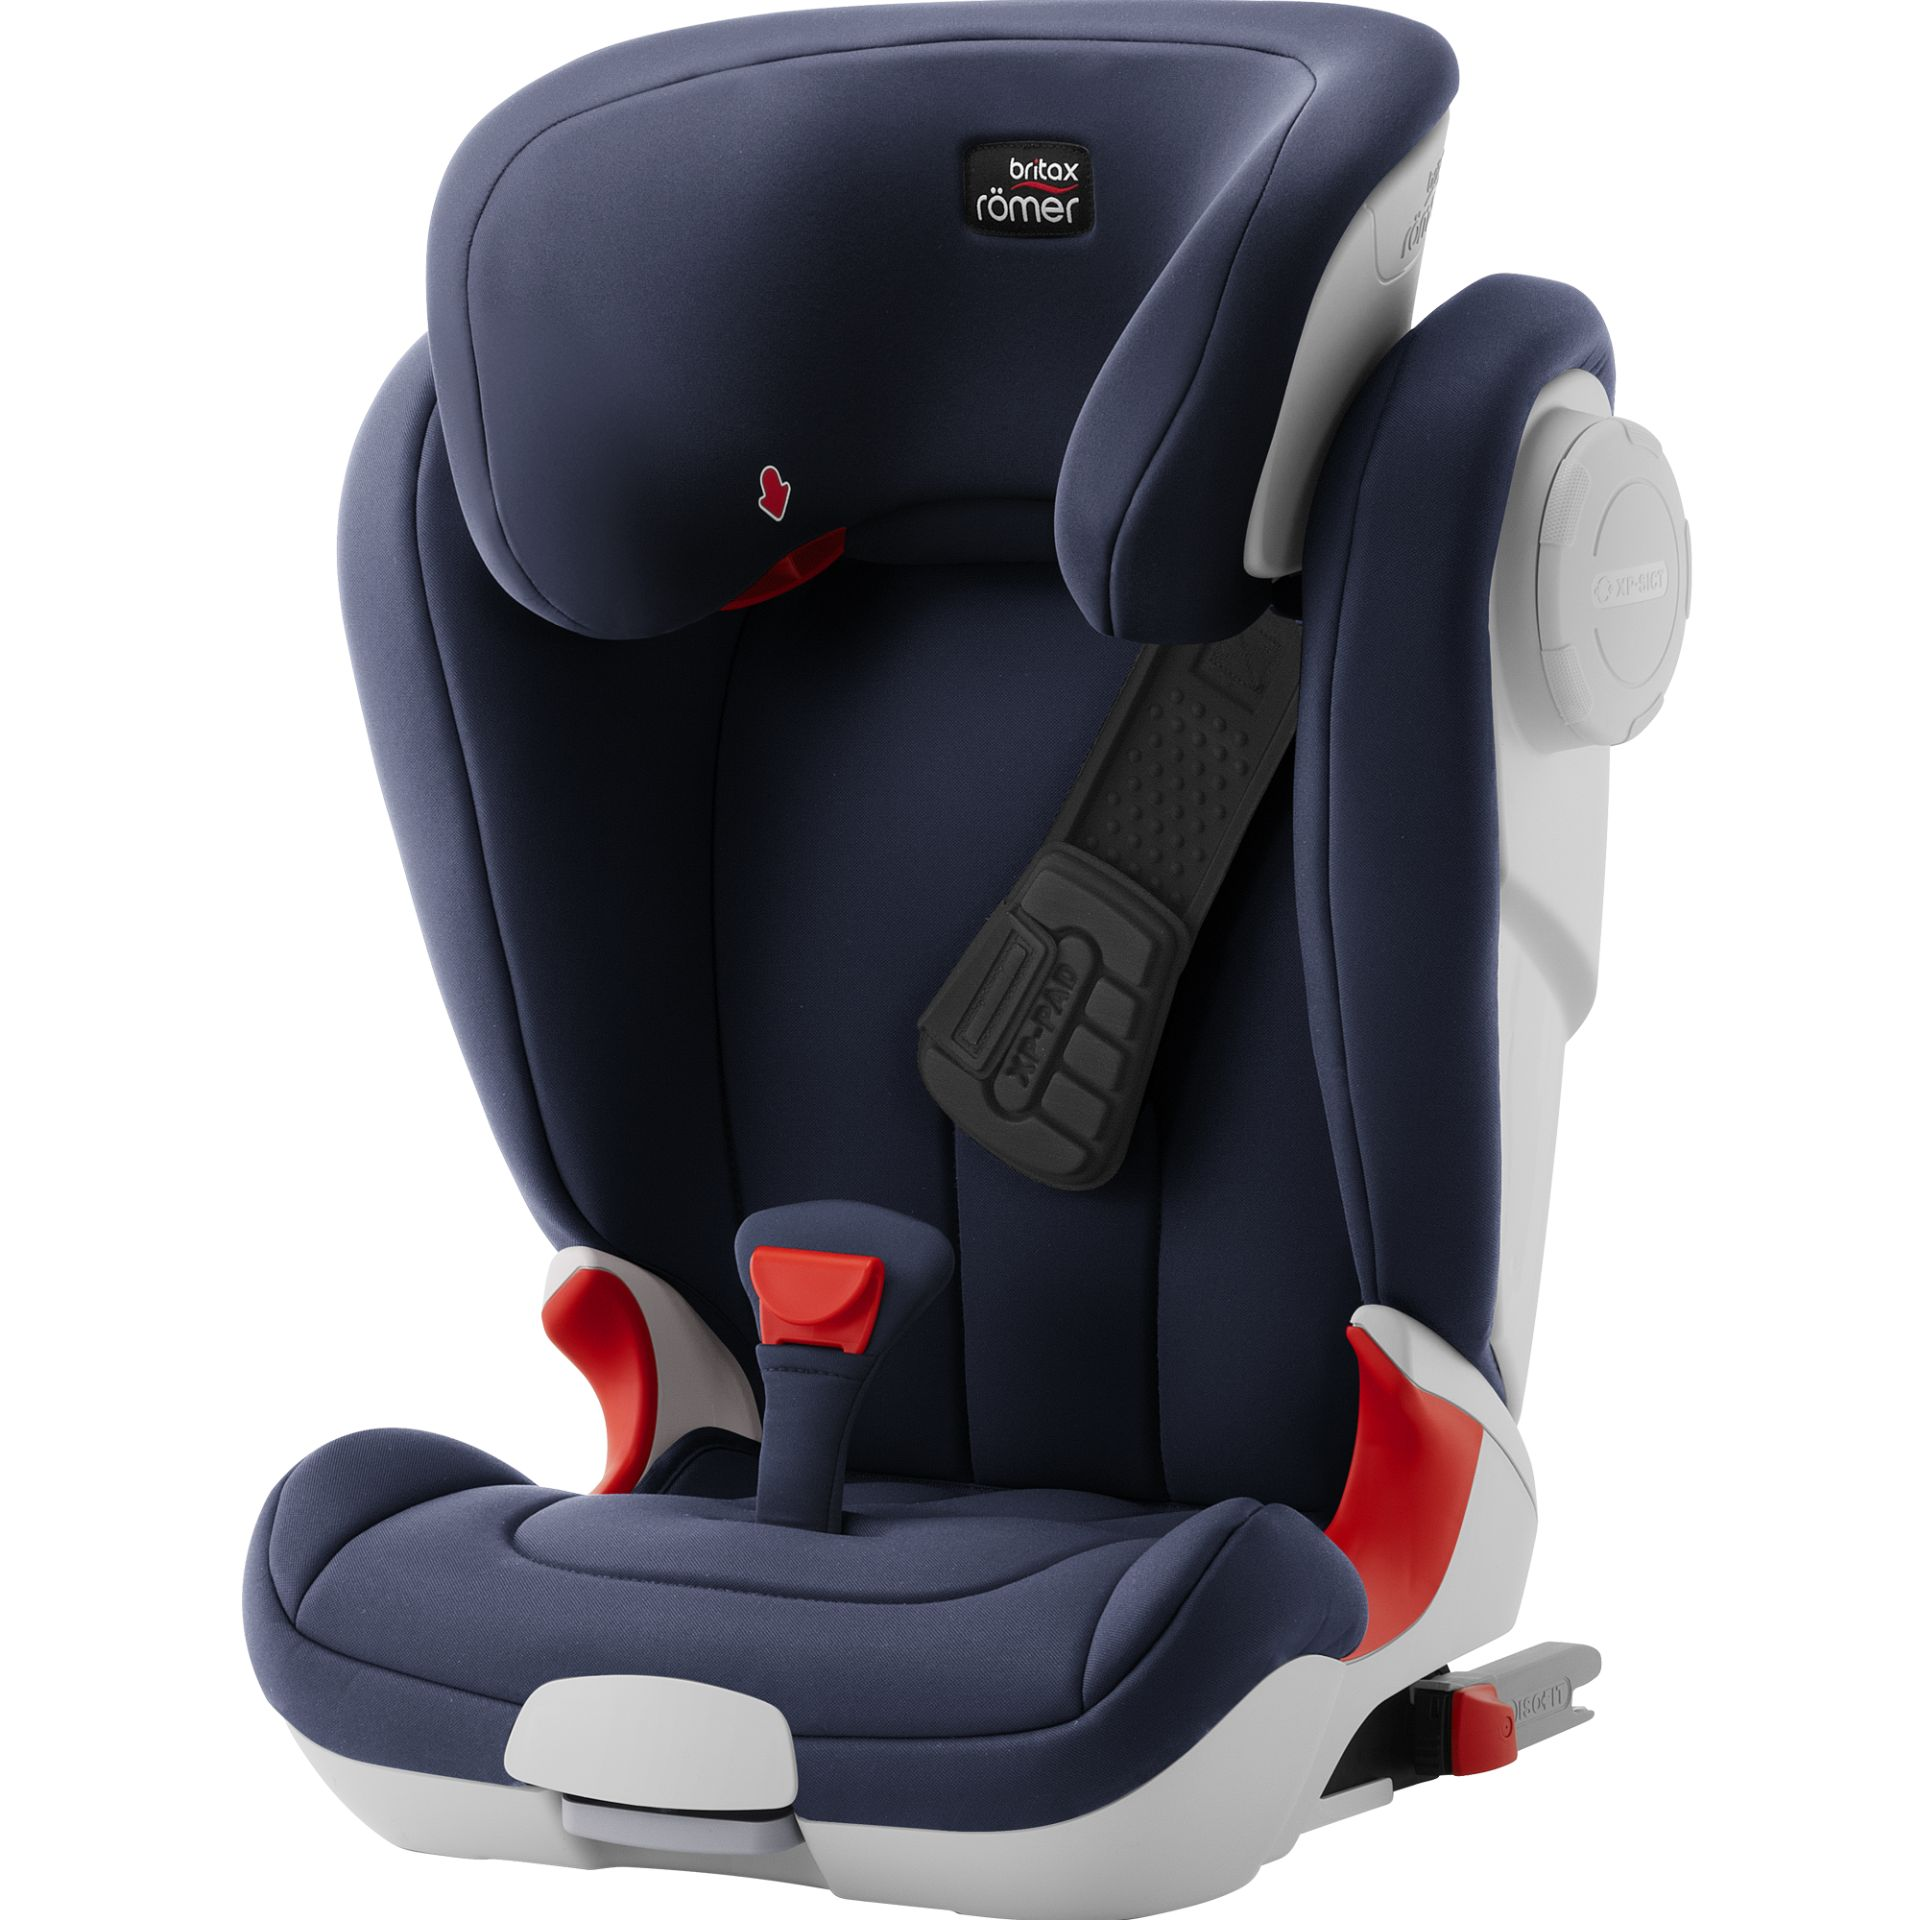 britax r mer kindersitz kidfix ii xp sict online kaufen. Black Bedroom Furniture Sets. Home Design Ideas